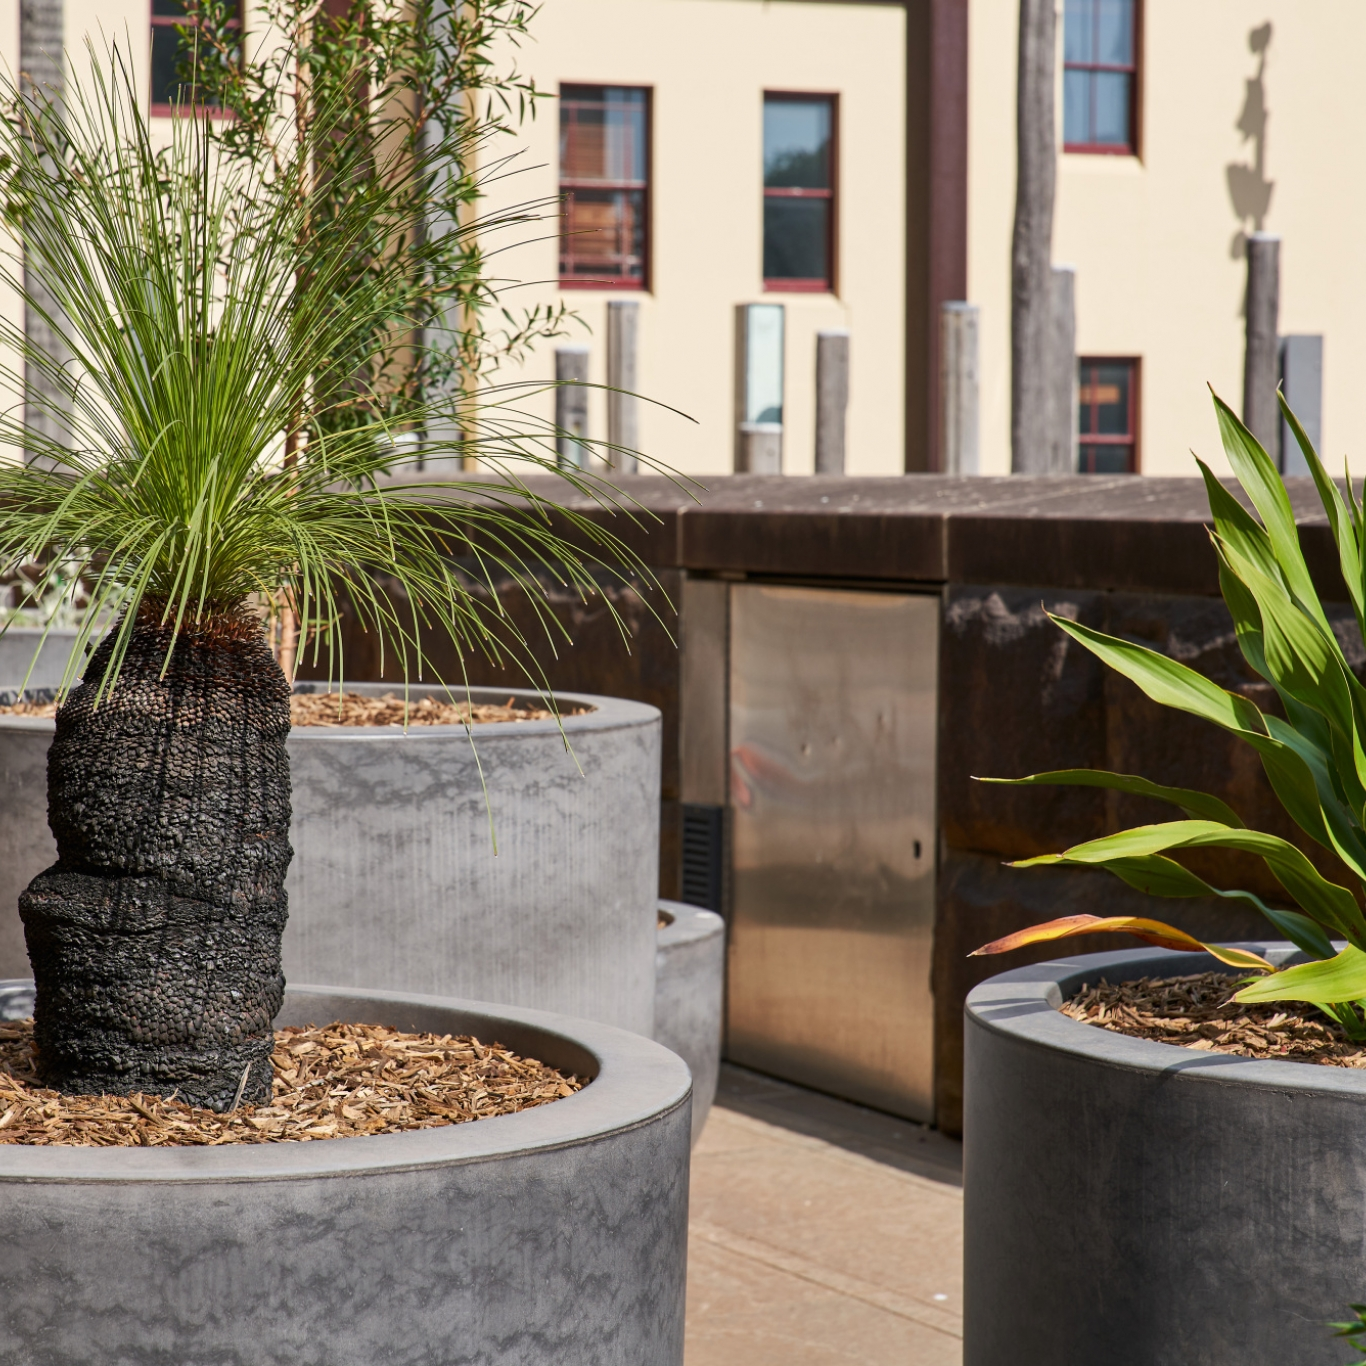 Native plants in containers on rooftop.